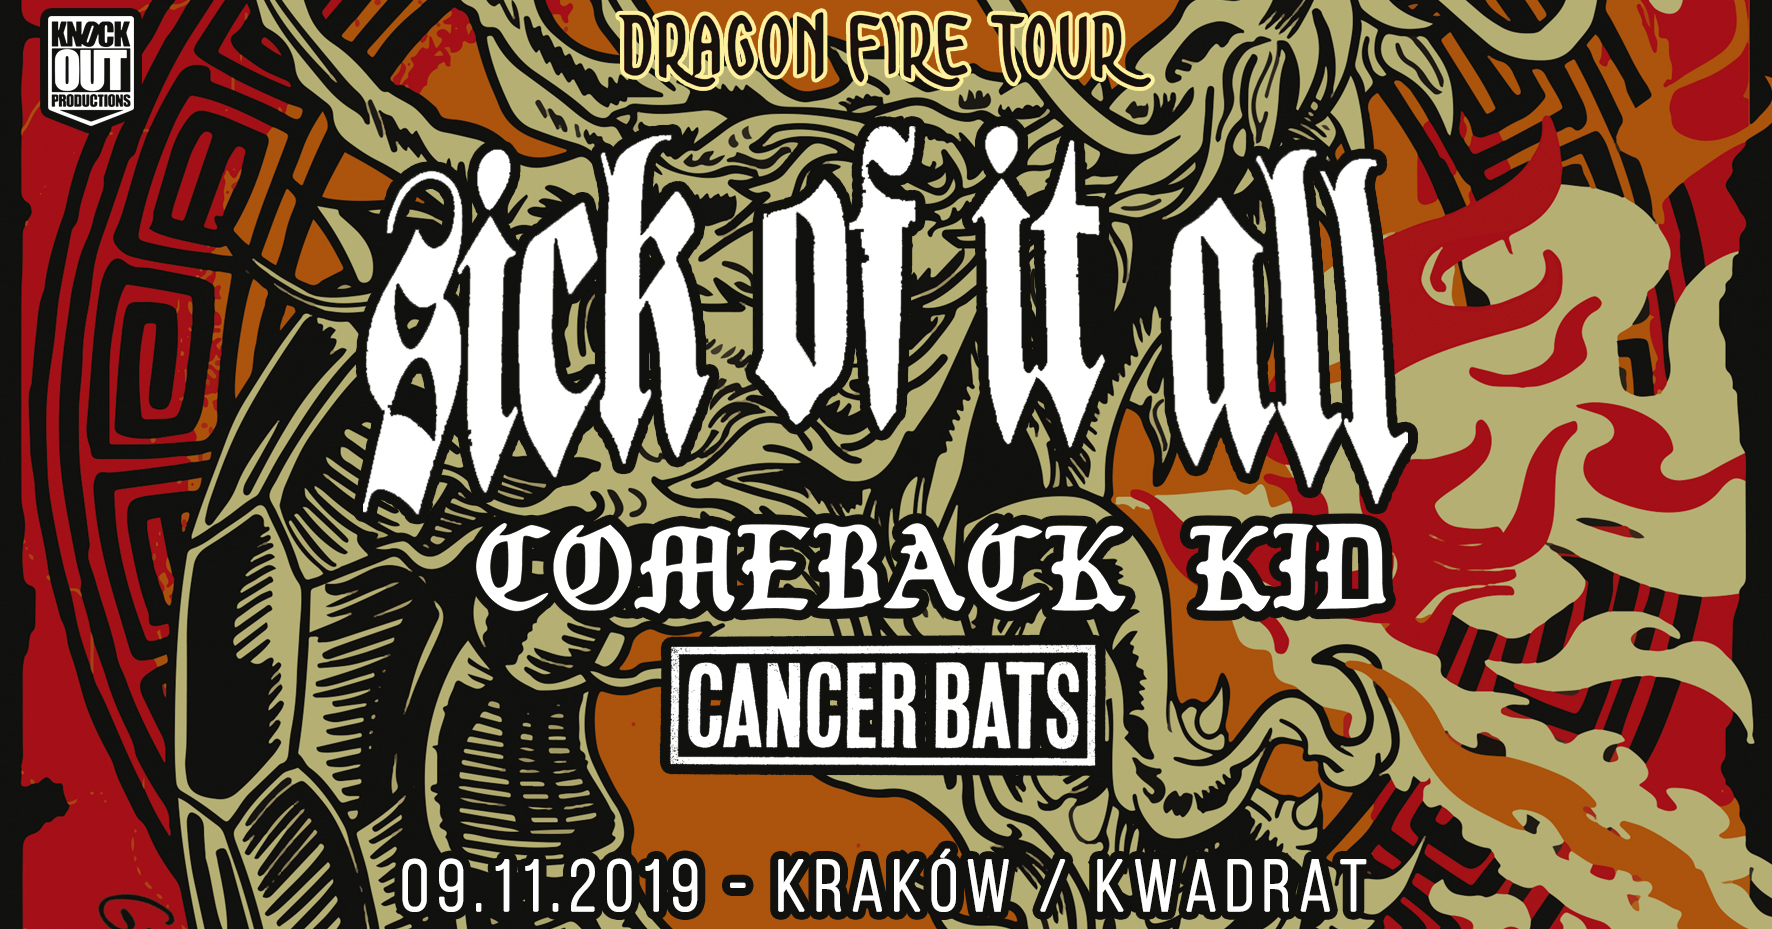 SICK OF IT ALL + Comeback Kid + Cancer Bats